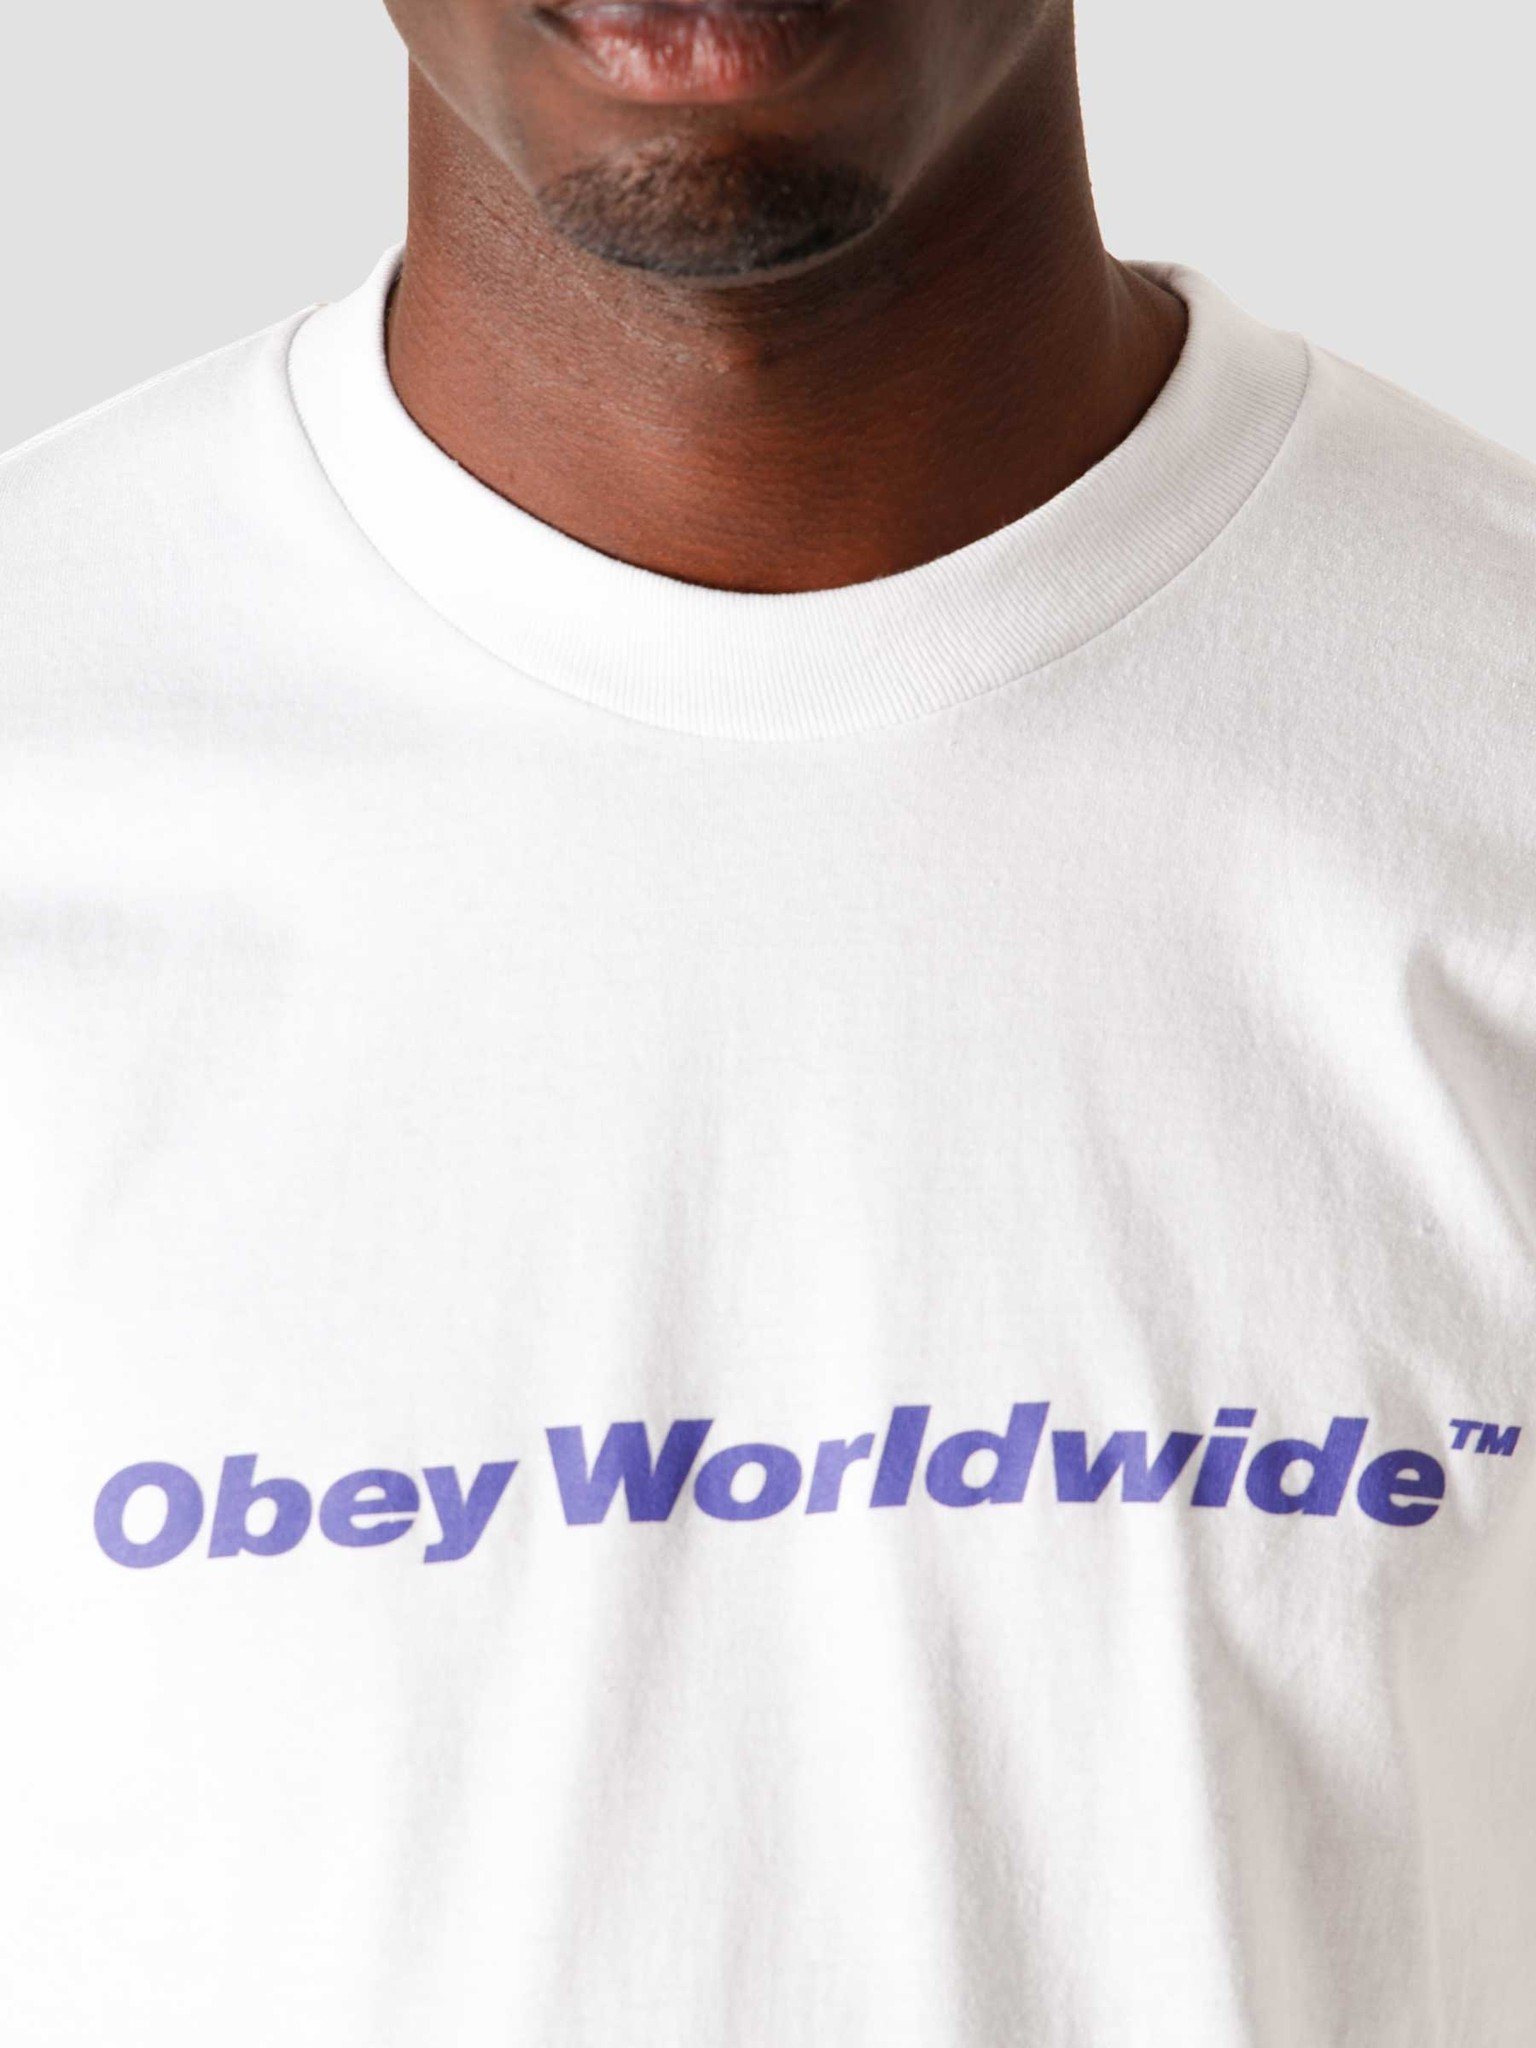 Obey Obey Worldwide Classic T-Shirt White 165262370WHT